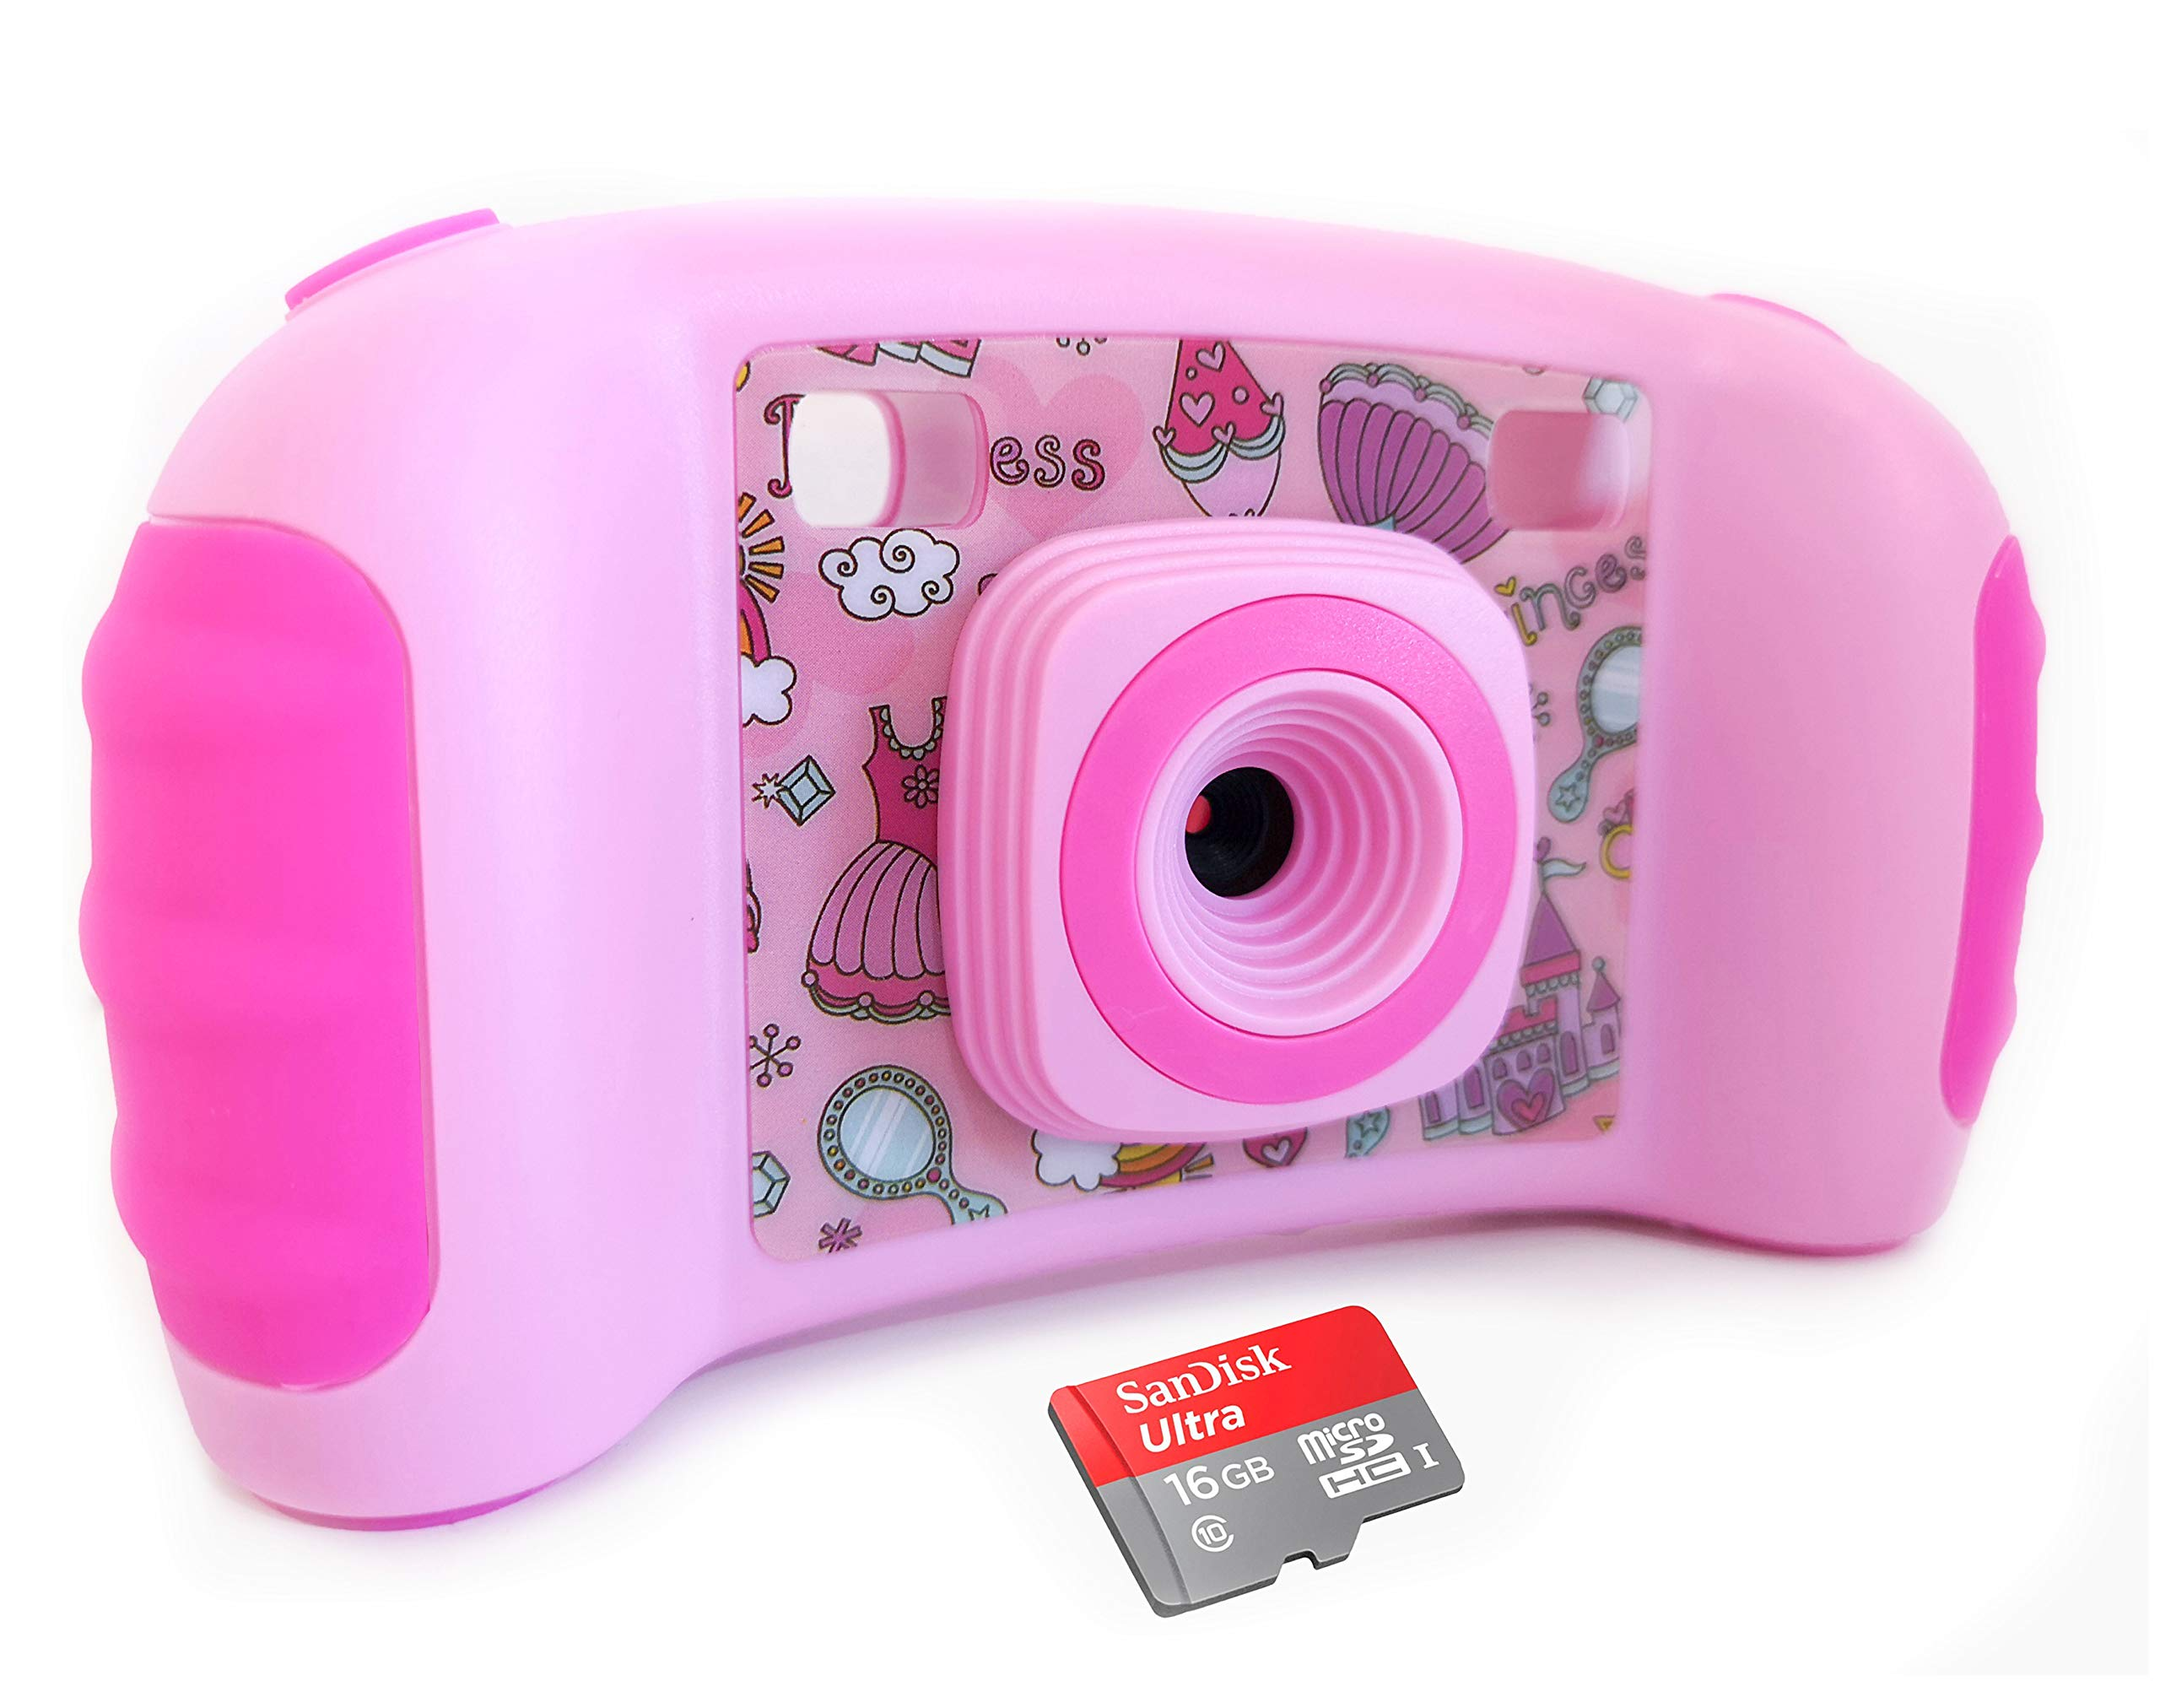 Vetté Digital Camera for Kids with 16GB MicroSD Card - Multifunctional Kids Camera - 2X Zoom, 720 HD Video Quality, 1.8 TFT LCD Screen,Games, Frames, Photo Editing and Voice Recorder Camera (Pink)